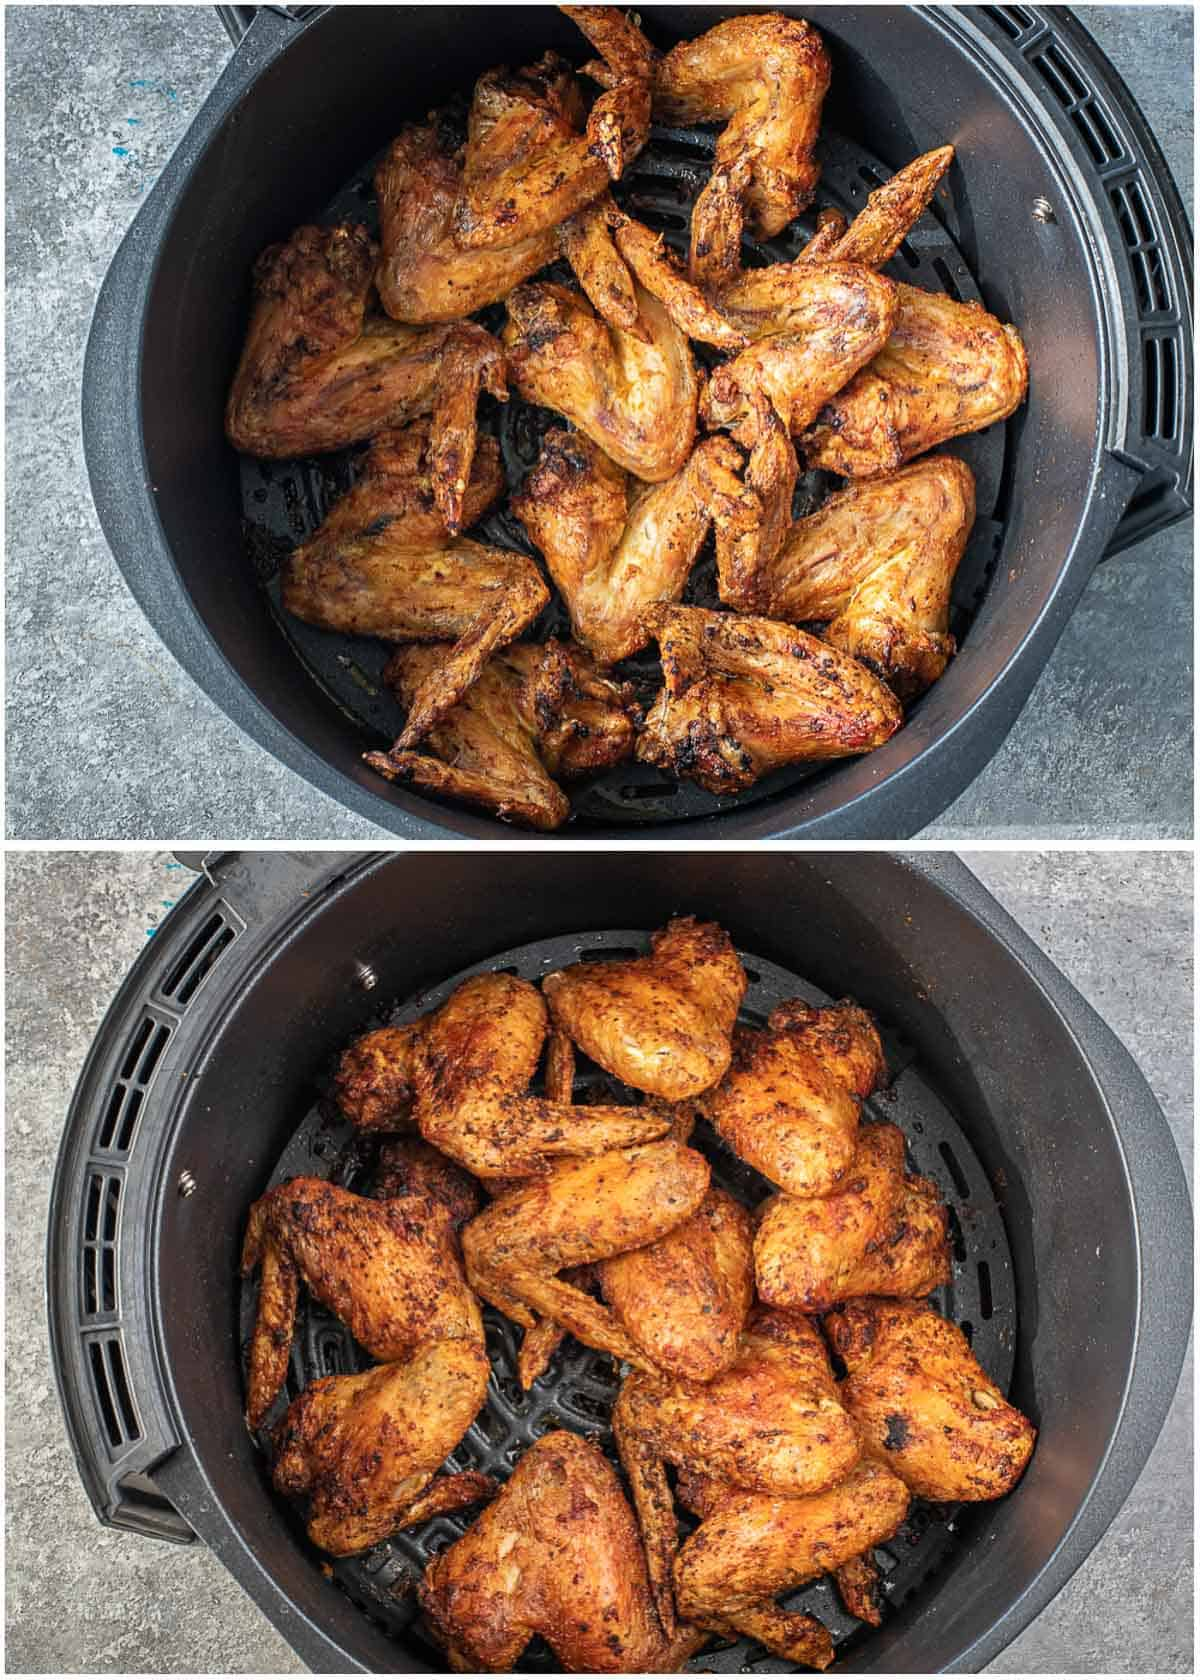 step by step process of cooking the chicken wings in the air fryer.